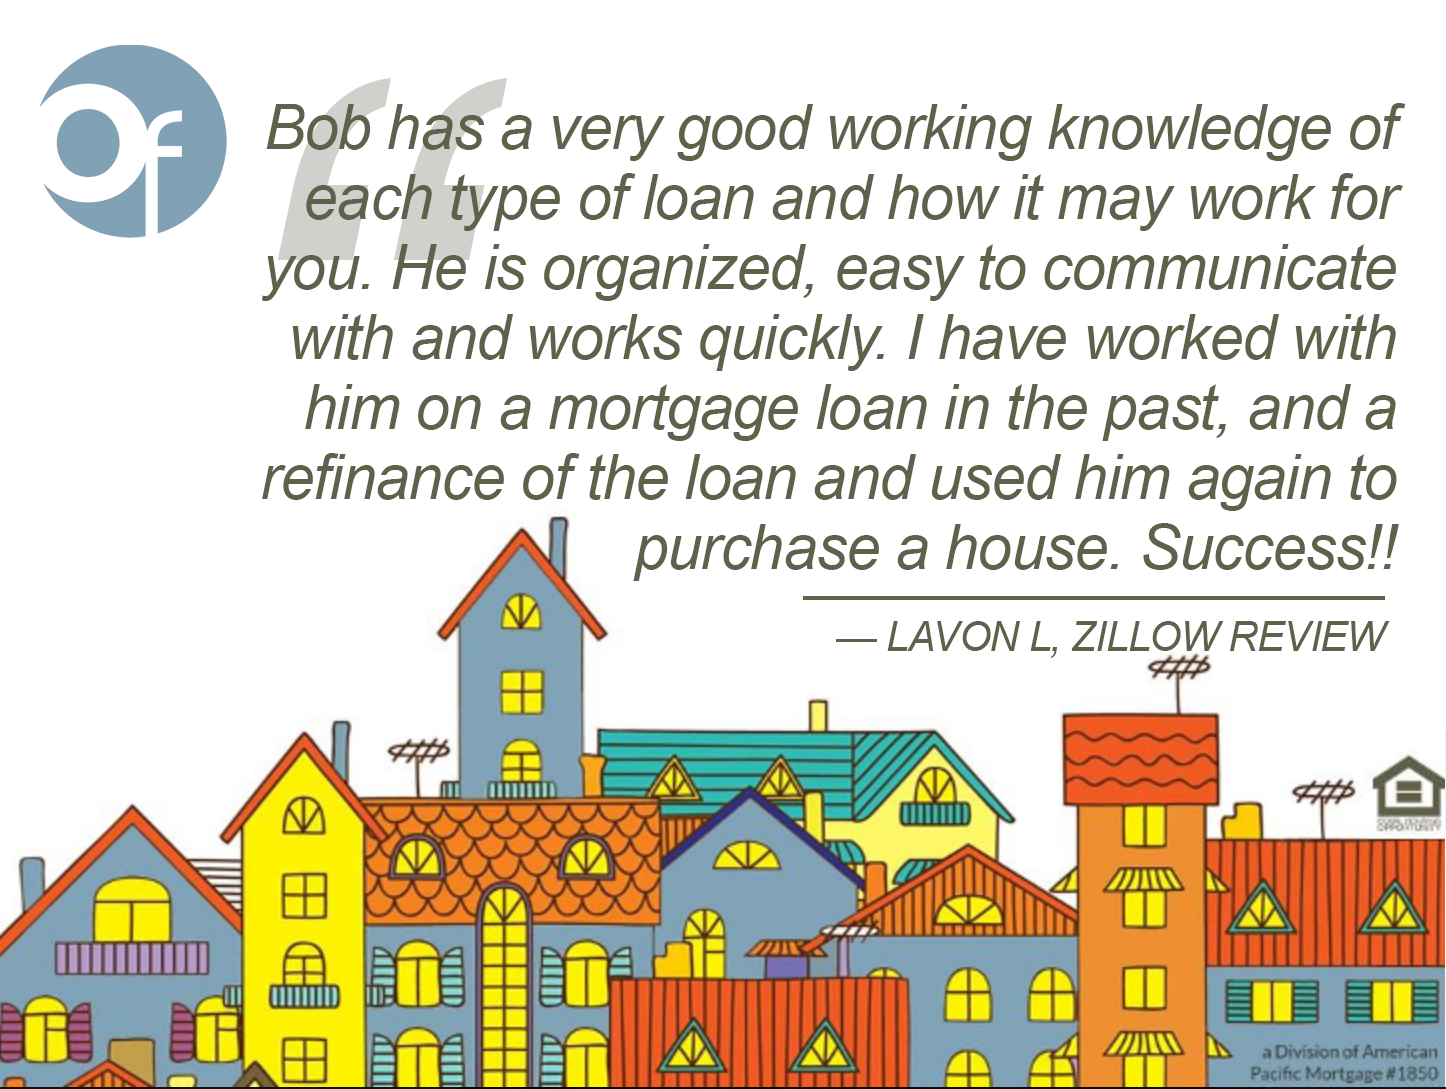 Bob has a very good working knowledge of each type of loan and how it may work for you. He is organized, easy to communicate with and works quickly. I have worked with him on a mortgage loan in the past, and a refinance of the loan and used him again to purchase a house. Success!!